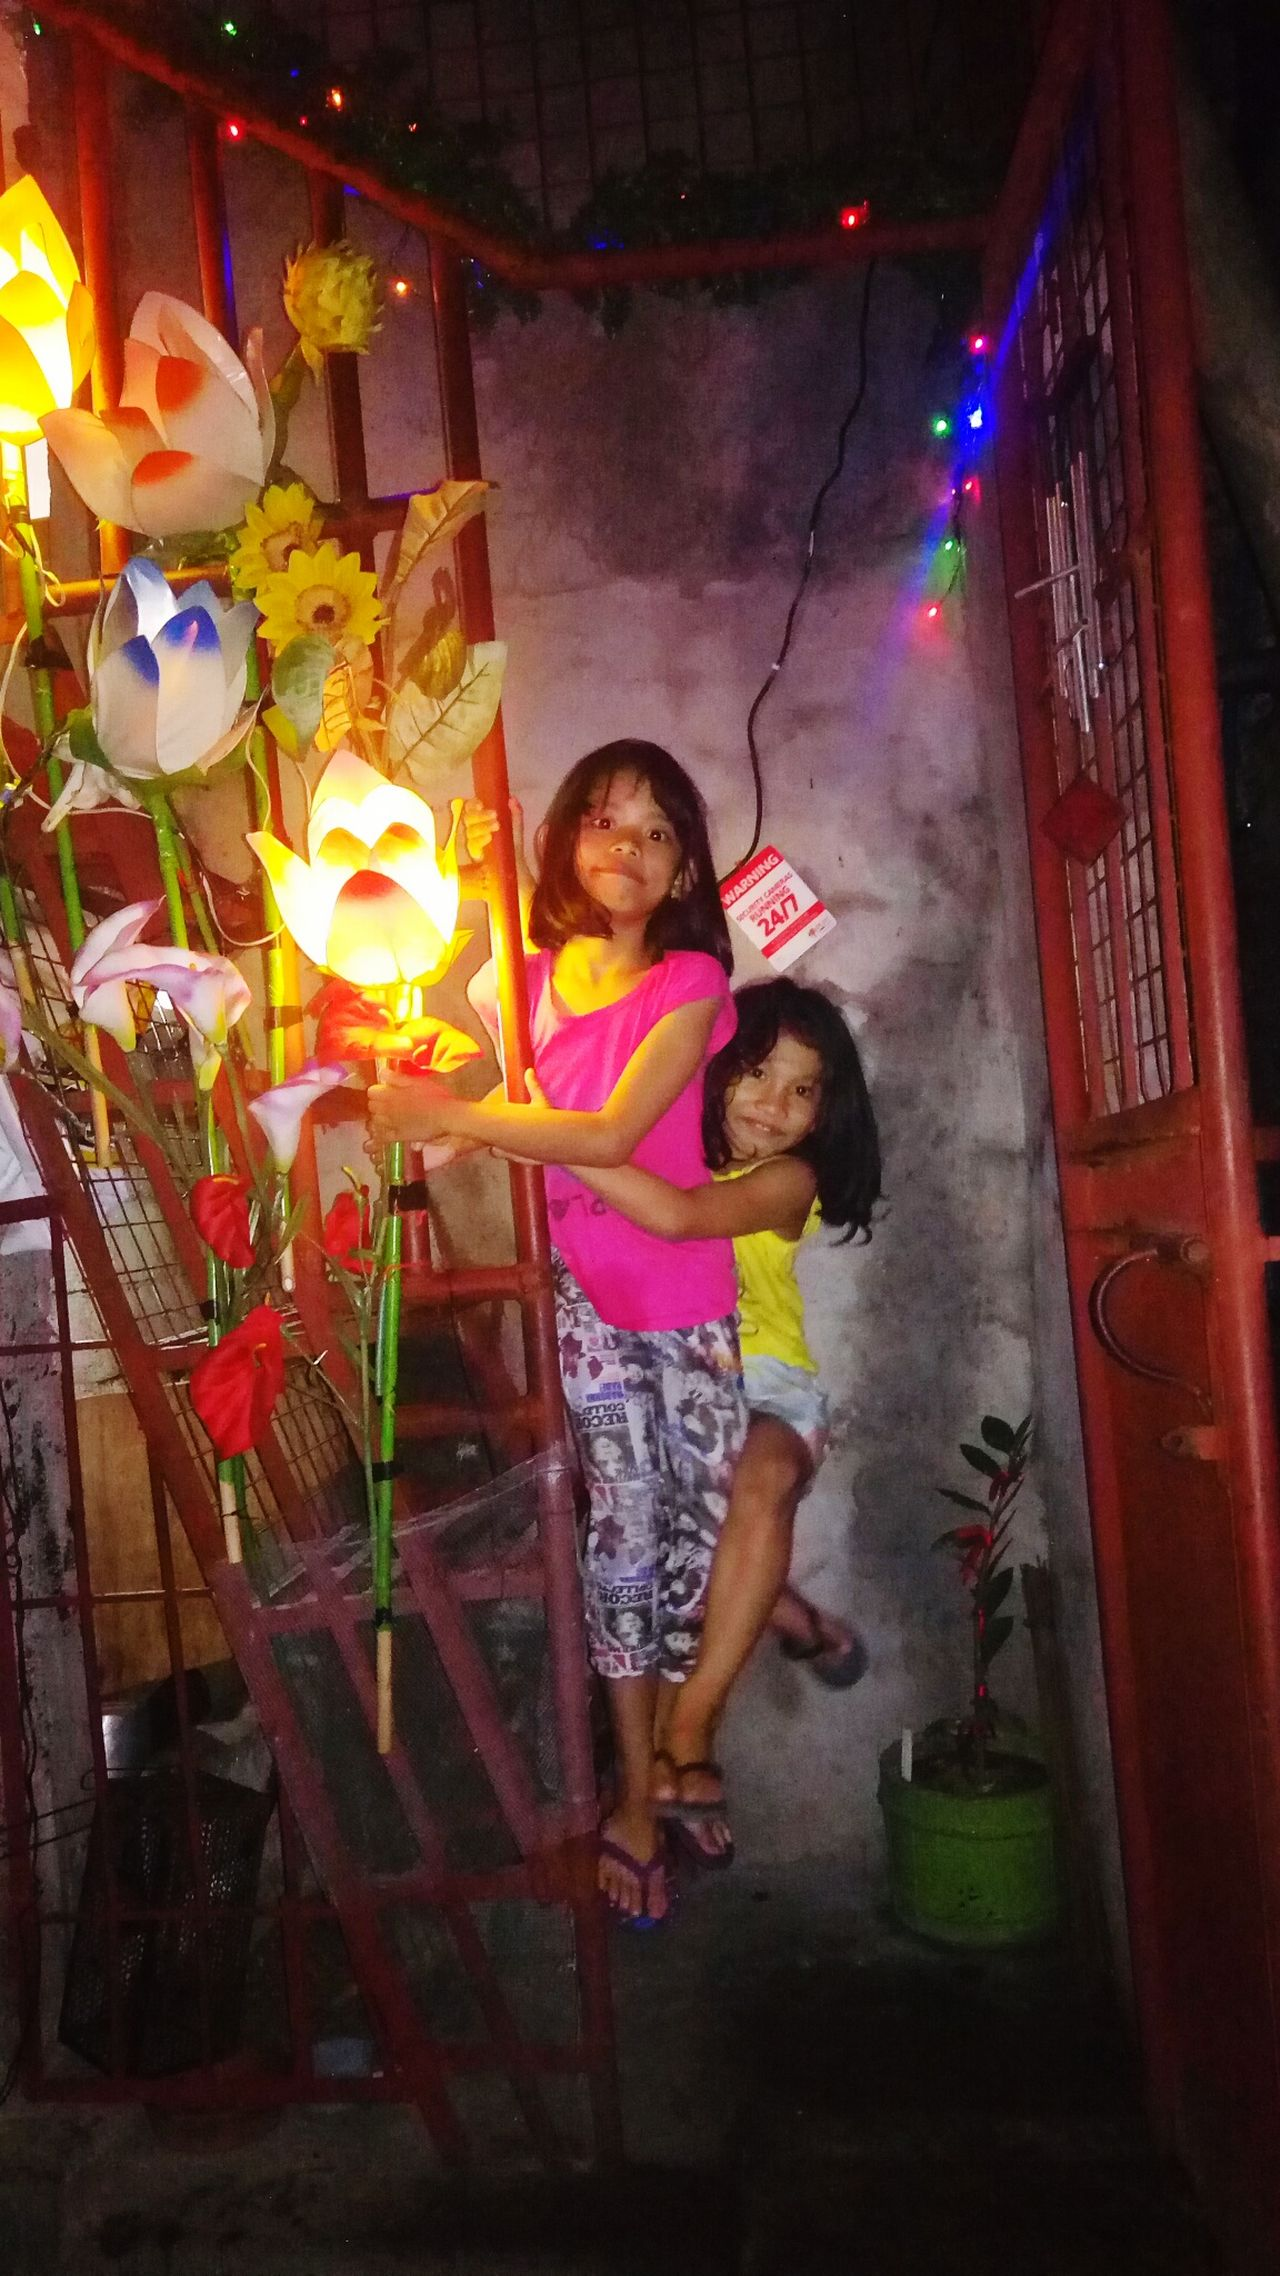 The Culture Of The Holidays Two People Child Night Fun Multi Colored Christmas Lights Christmas Decoration Christmas Children Only Exploring Style LittleRascals Littlegirl Christmas Decorations Christmastime Christmas Market Christmas Around The World Stairs Beautiful Lighting And Decoration Christmas Spirit Christmas2016